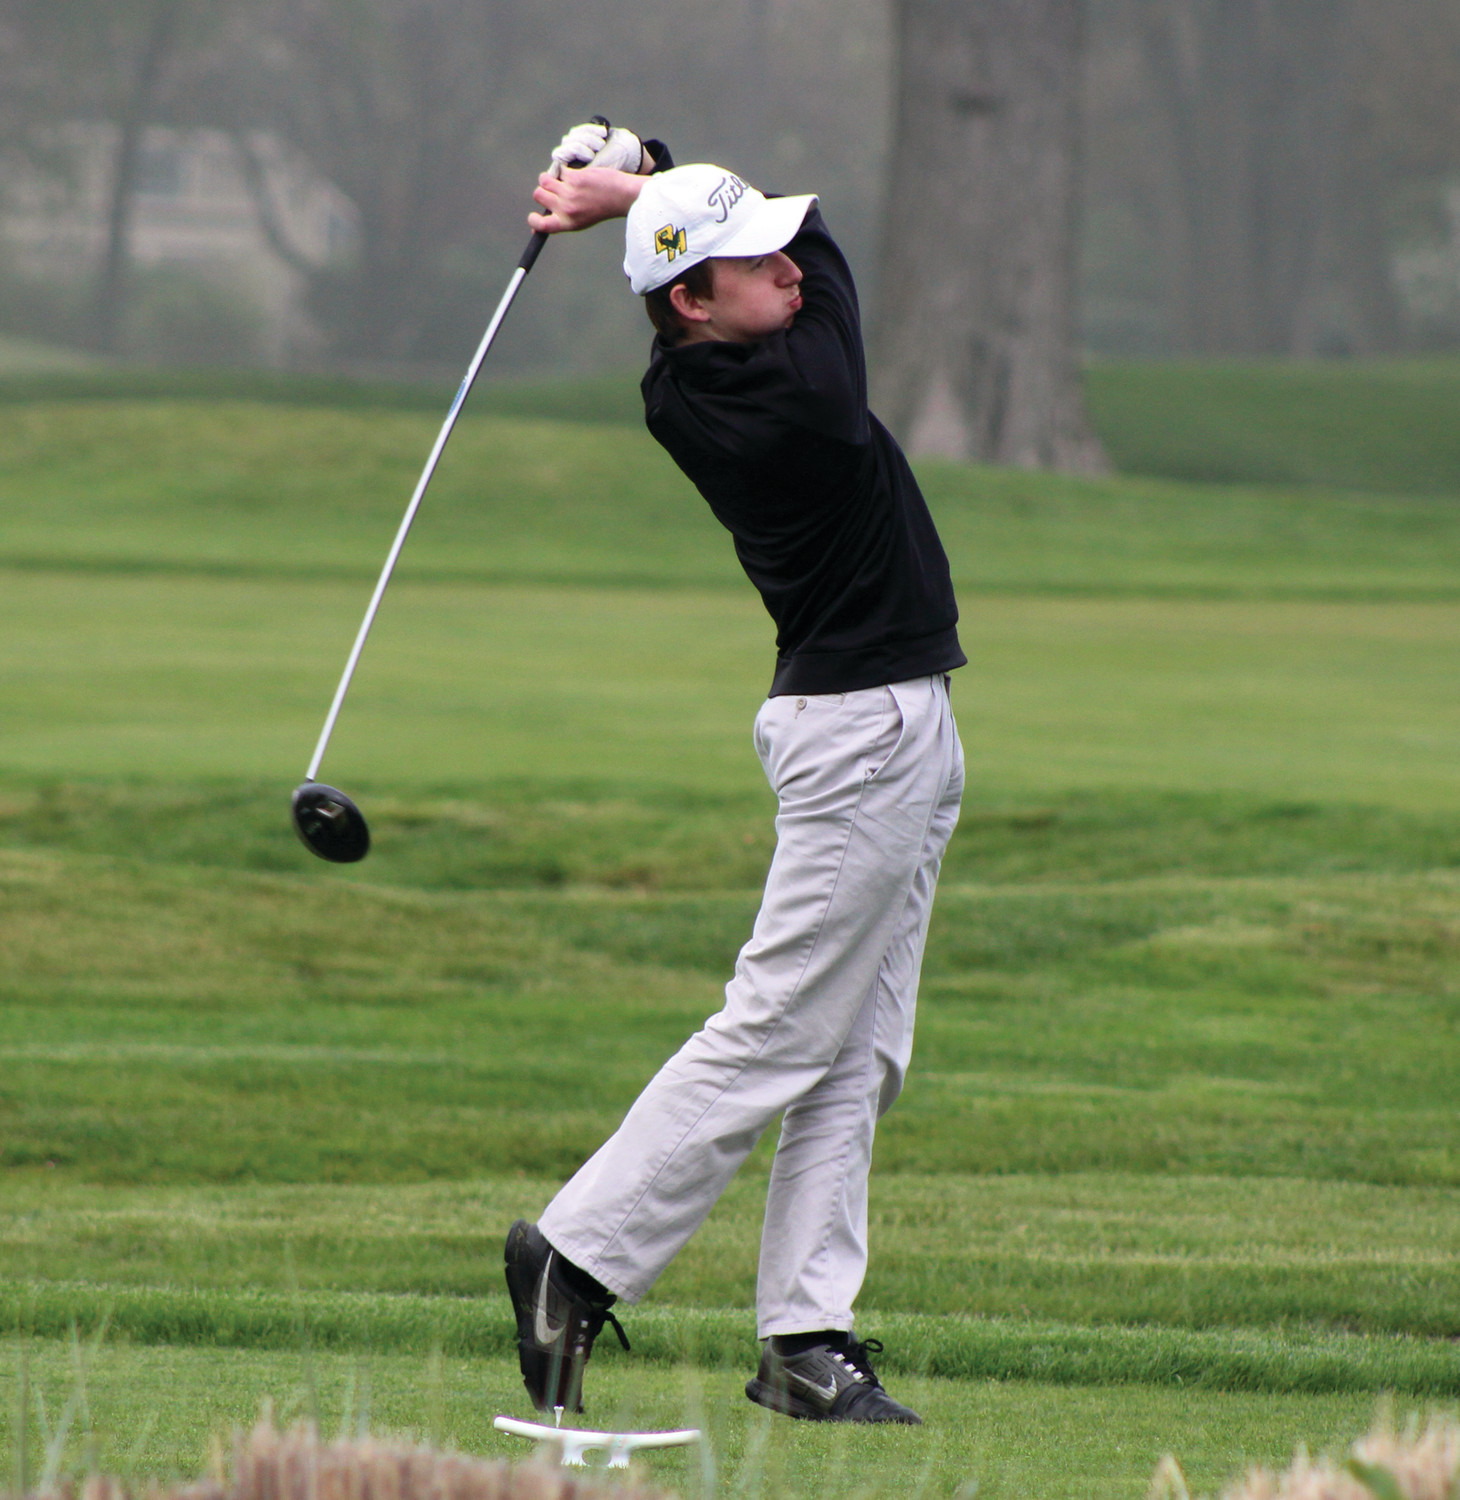 ON THE FAIRWAY: Bishop Hendricken's Justin Richard watches a drive against Toll Gate.